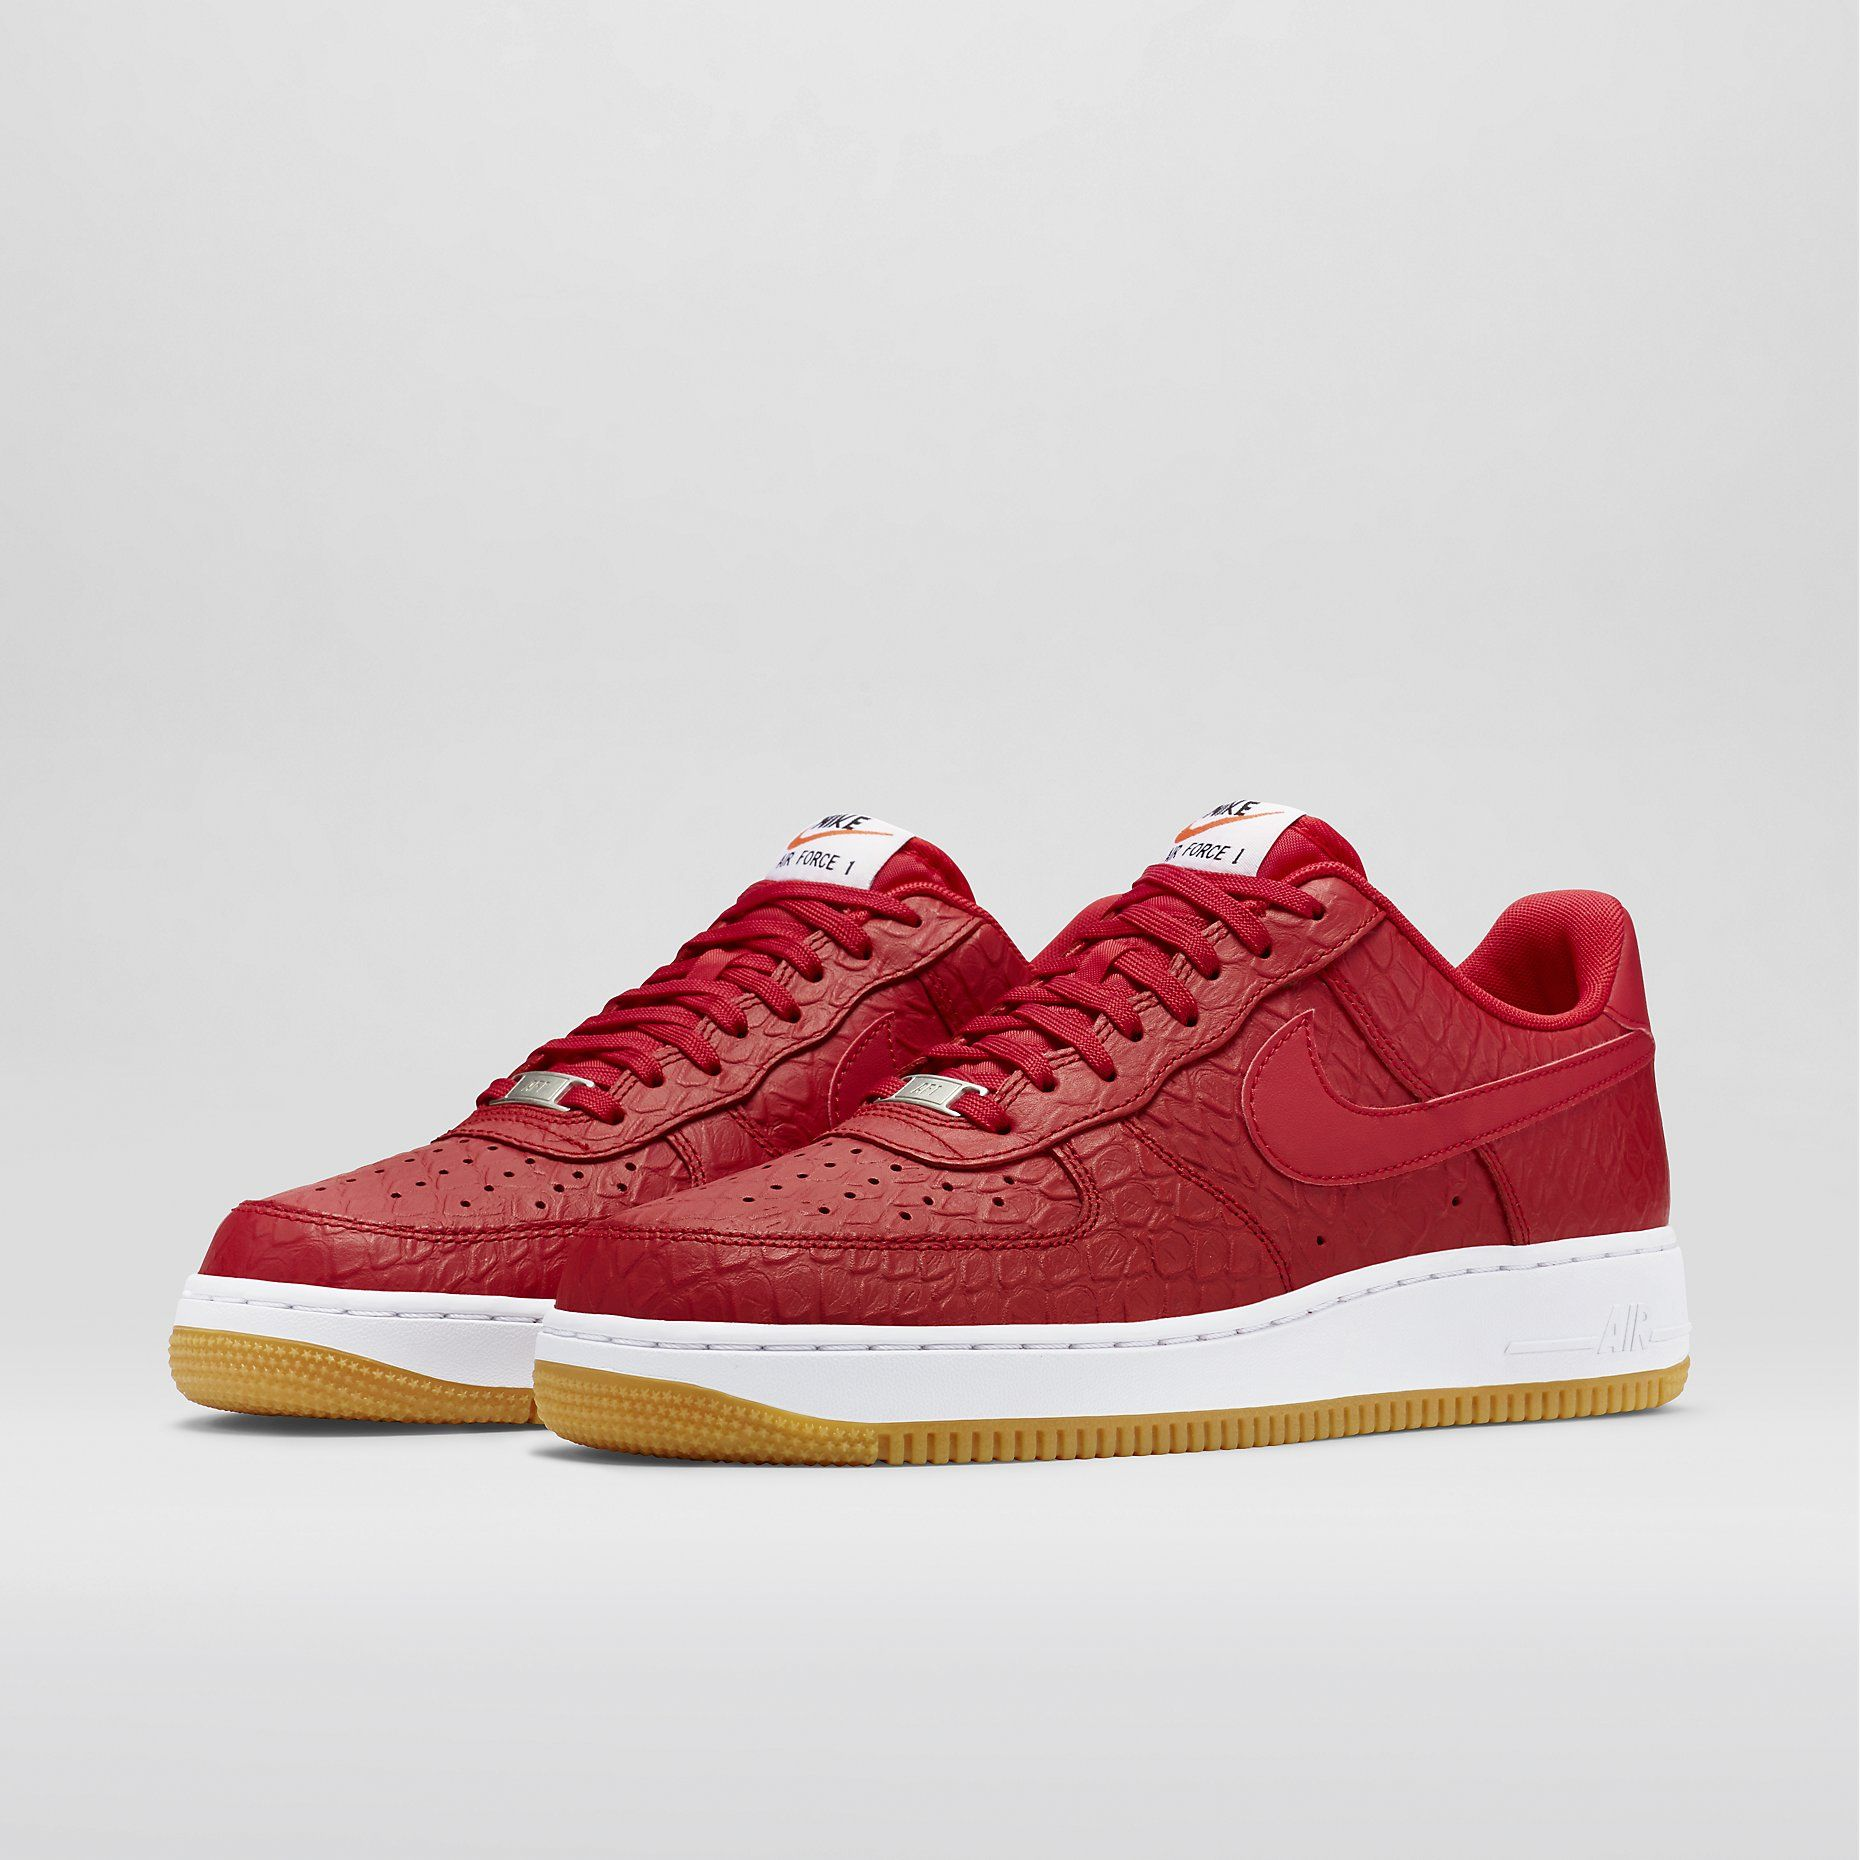 watch f1372 e4667 Nike Air Force 1 07 LV8 - University Red White Gum Light Brown University  Red